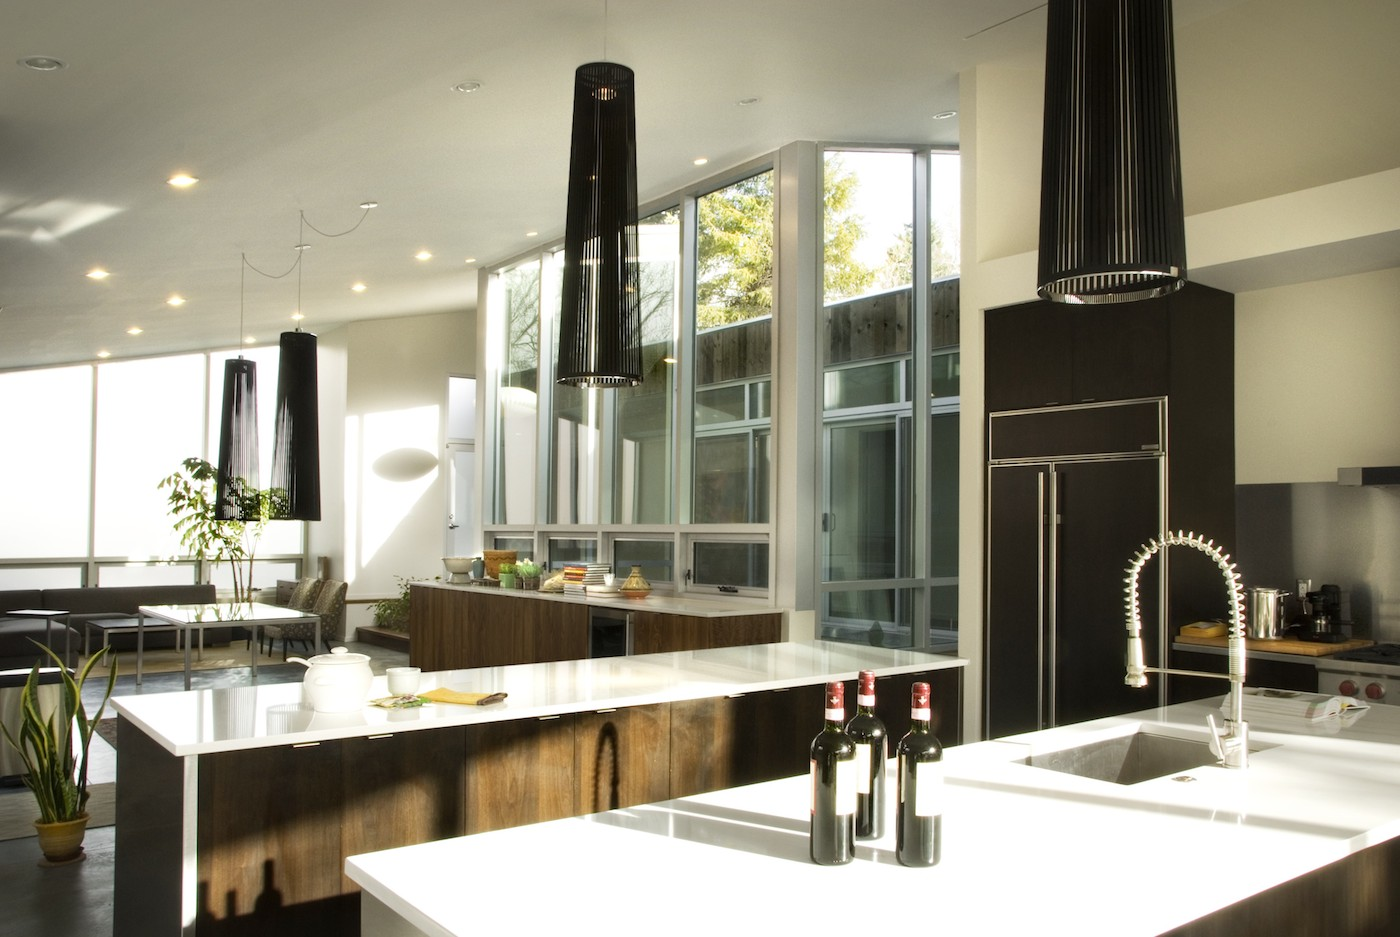 Current Trends With Kitchen Countertop Materials